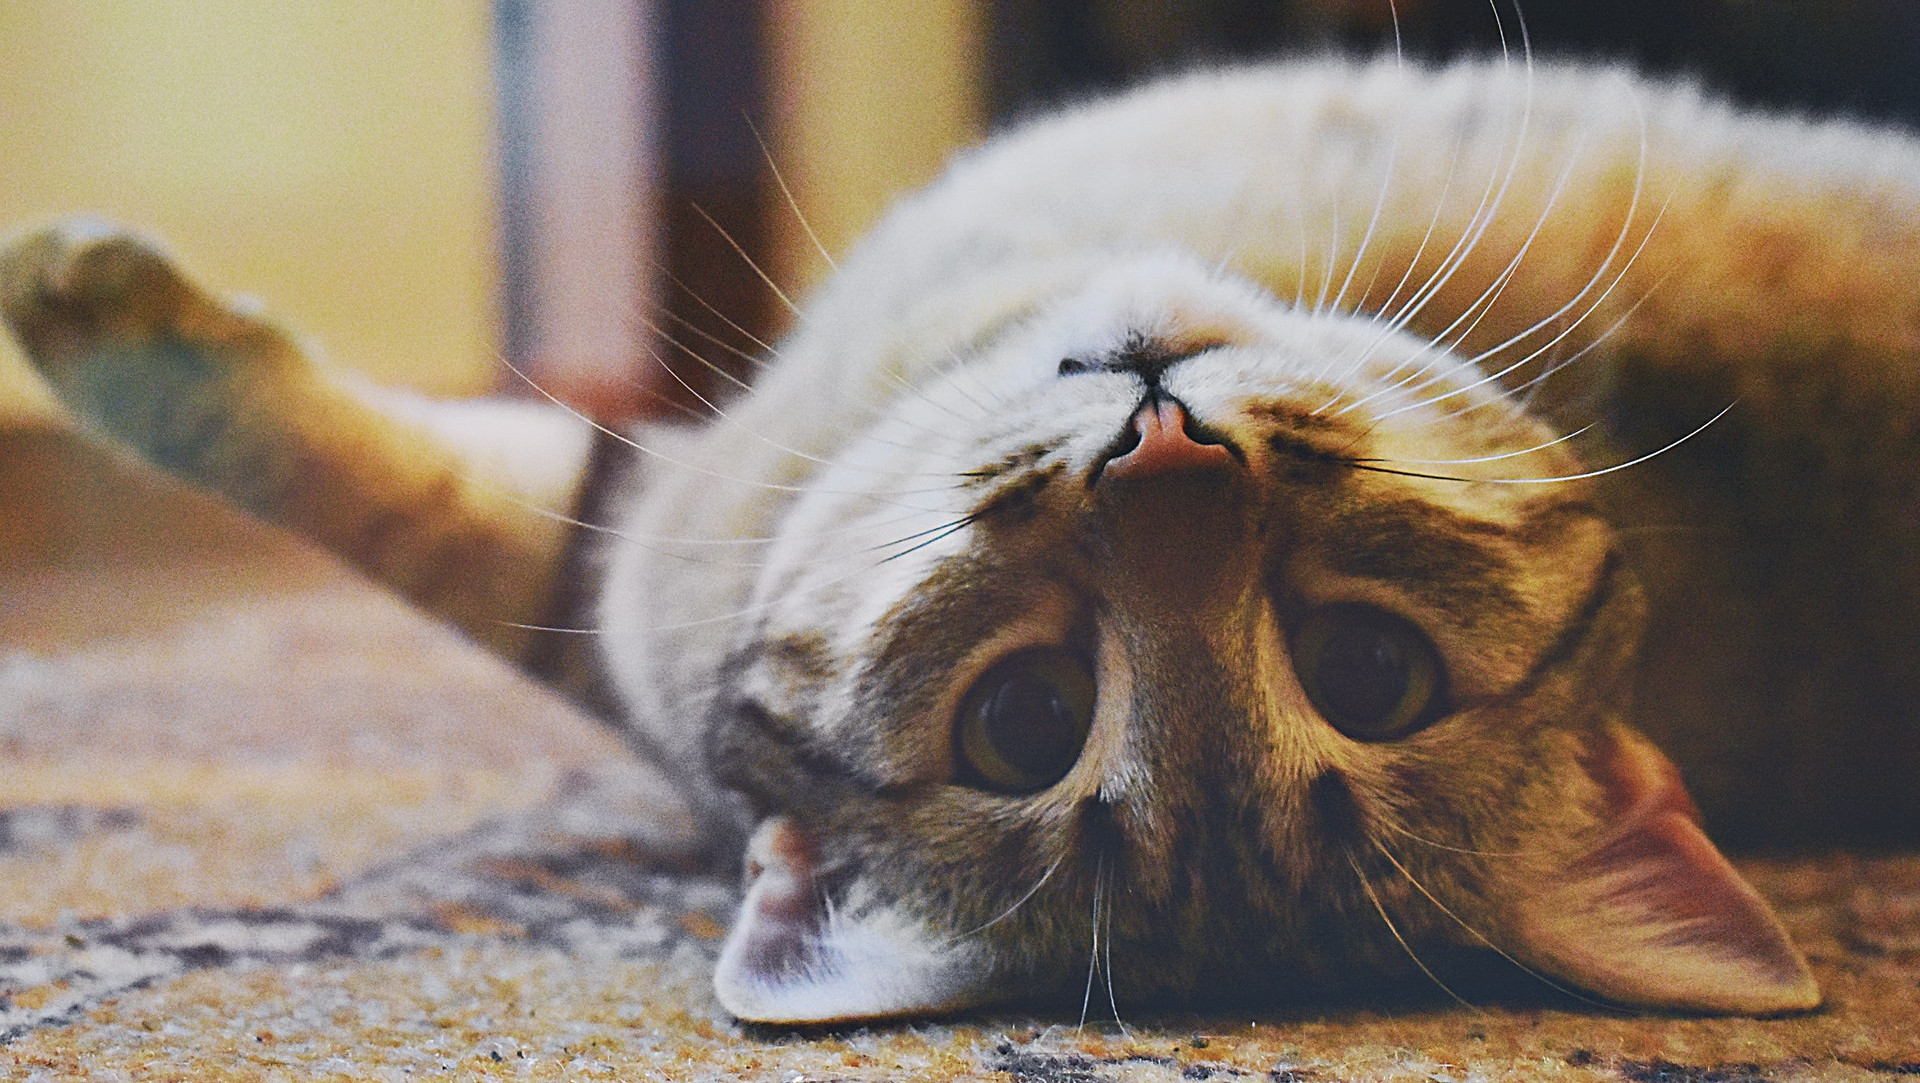 10 Instagram Accounts Every Cat Lover Should Be Following